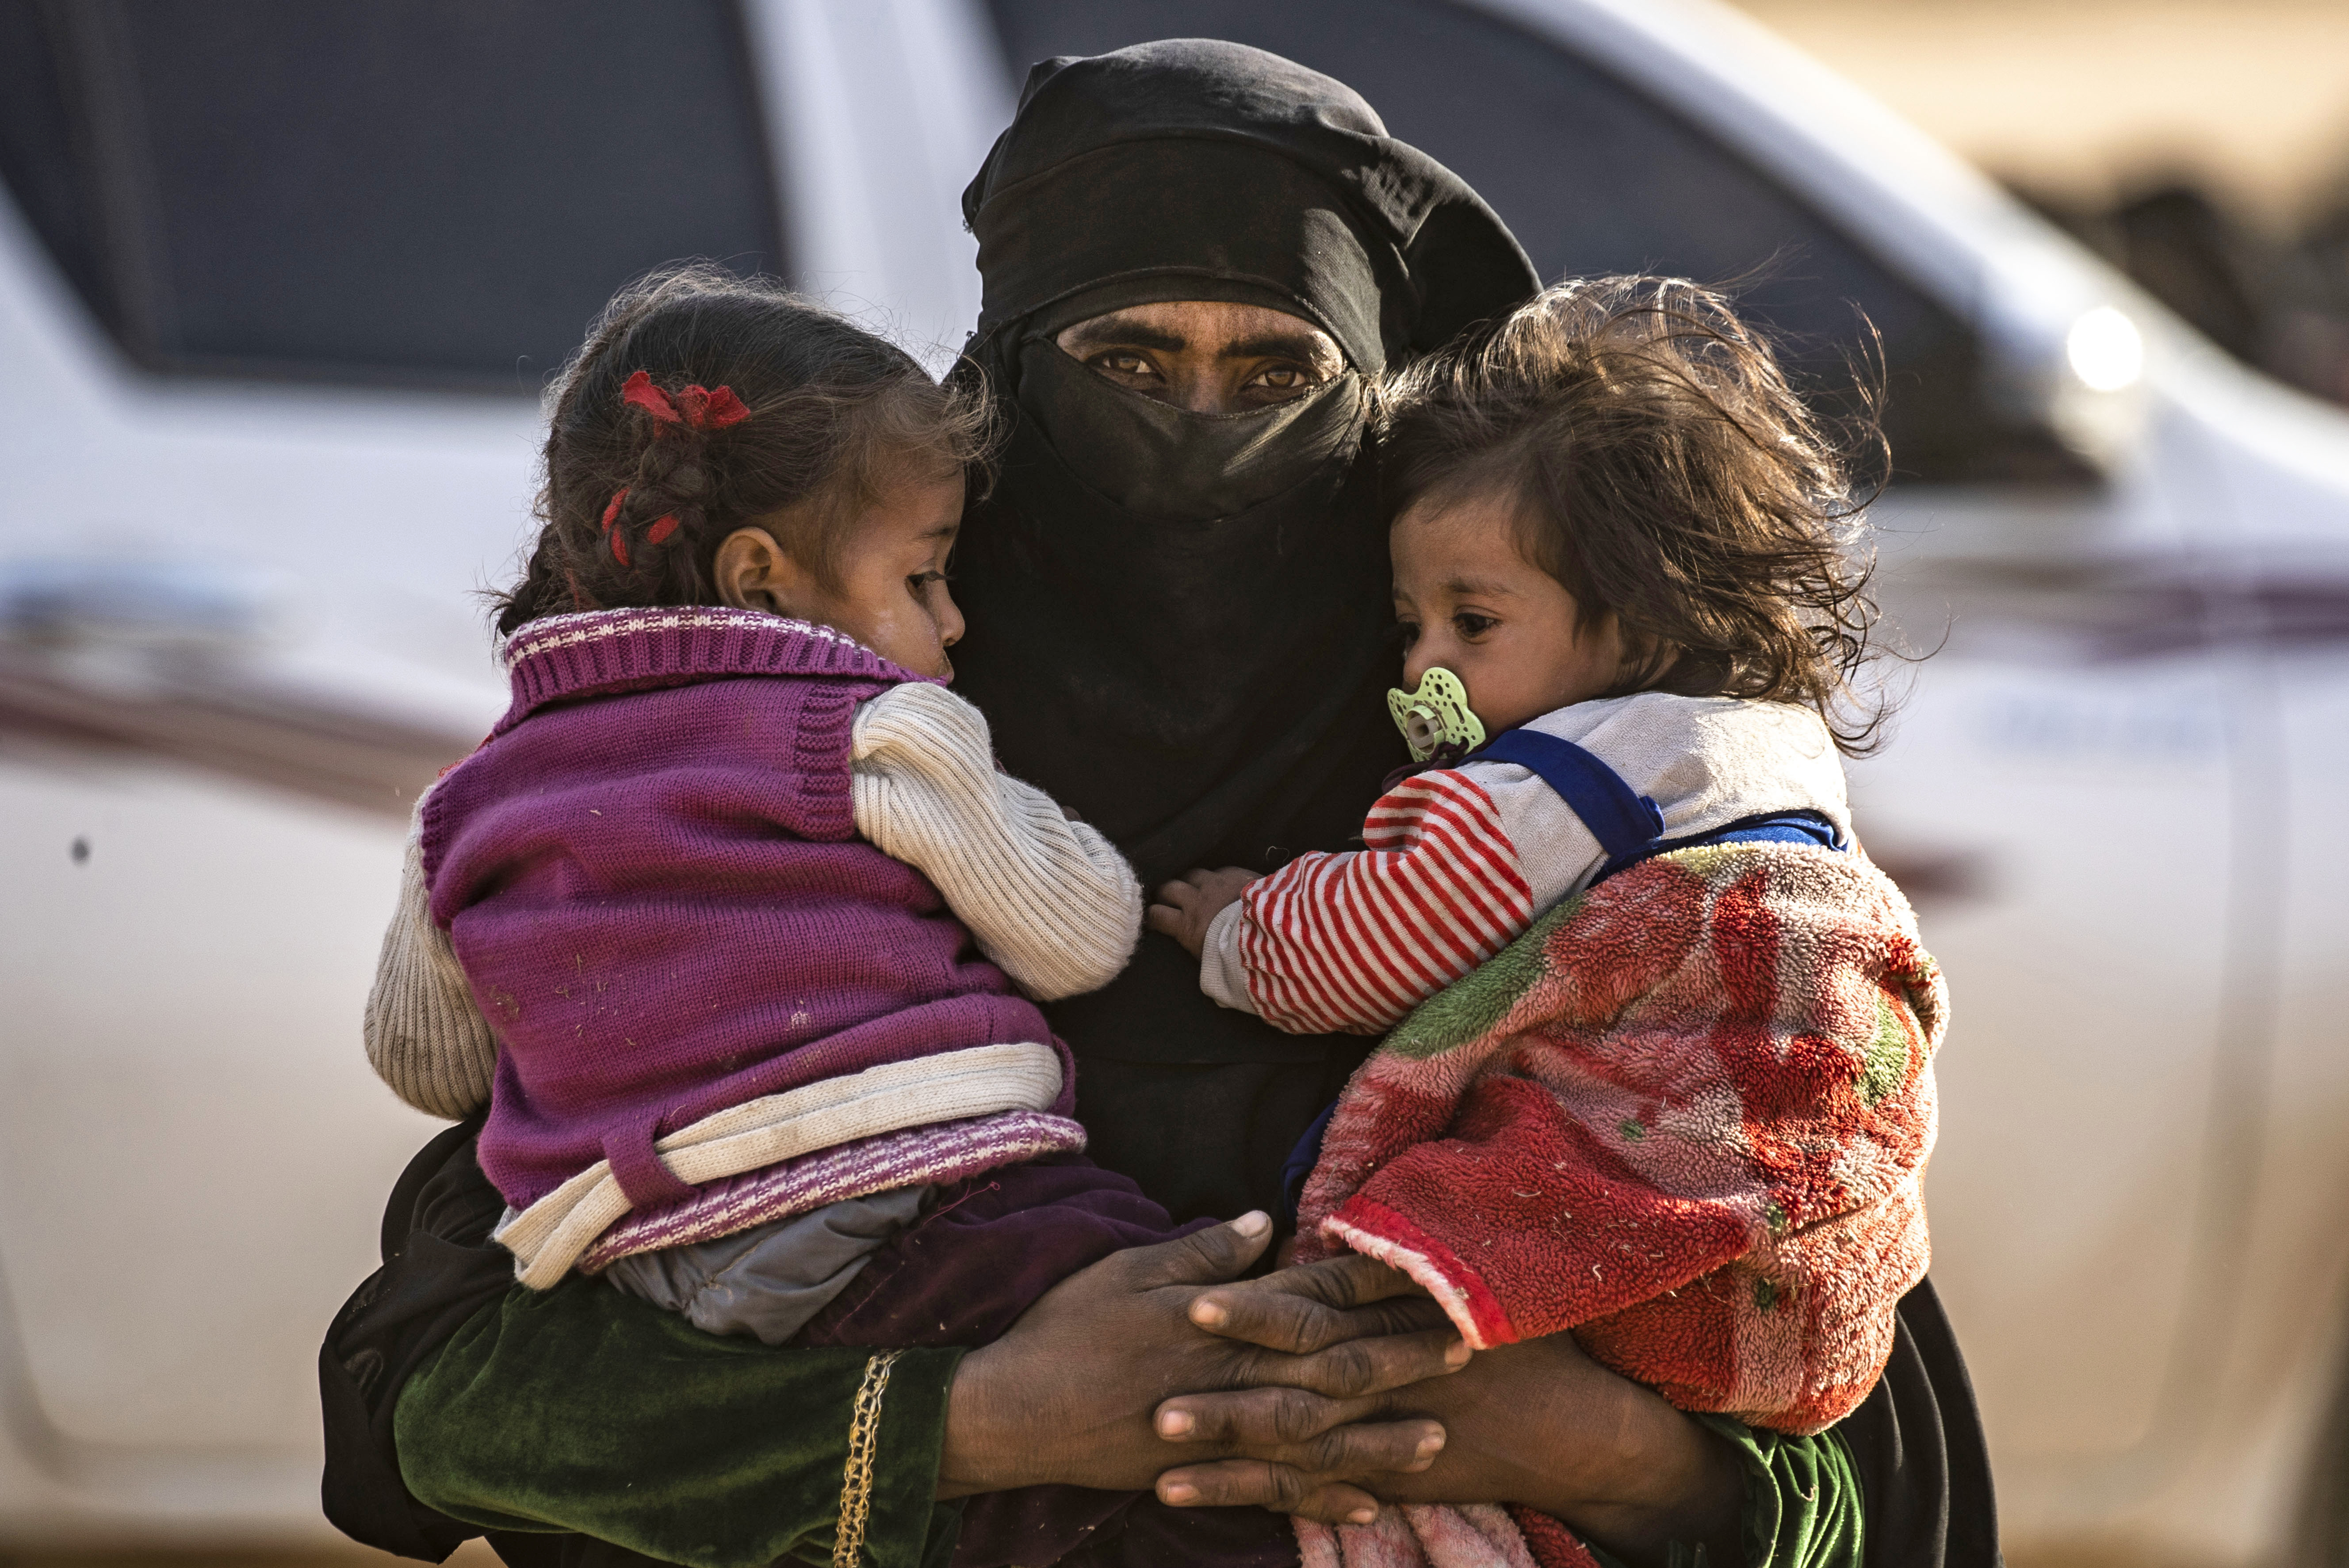 Dying ISIS territory in Syria empties itself of last survivors